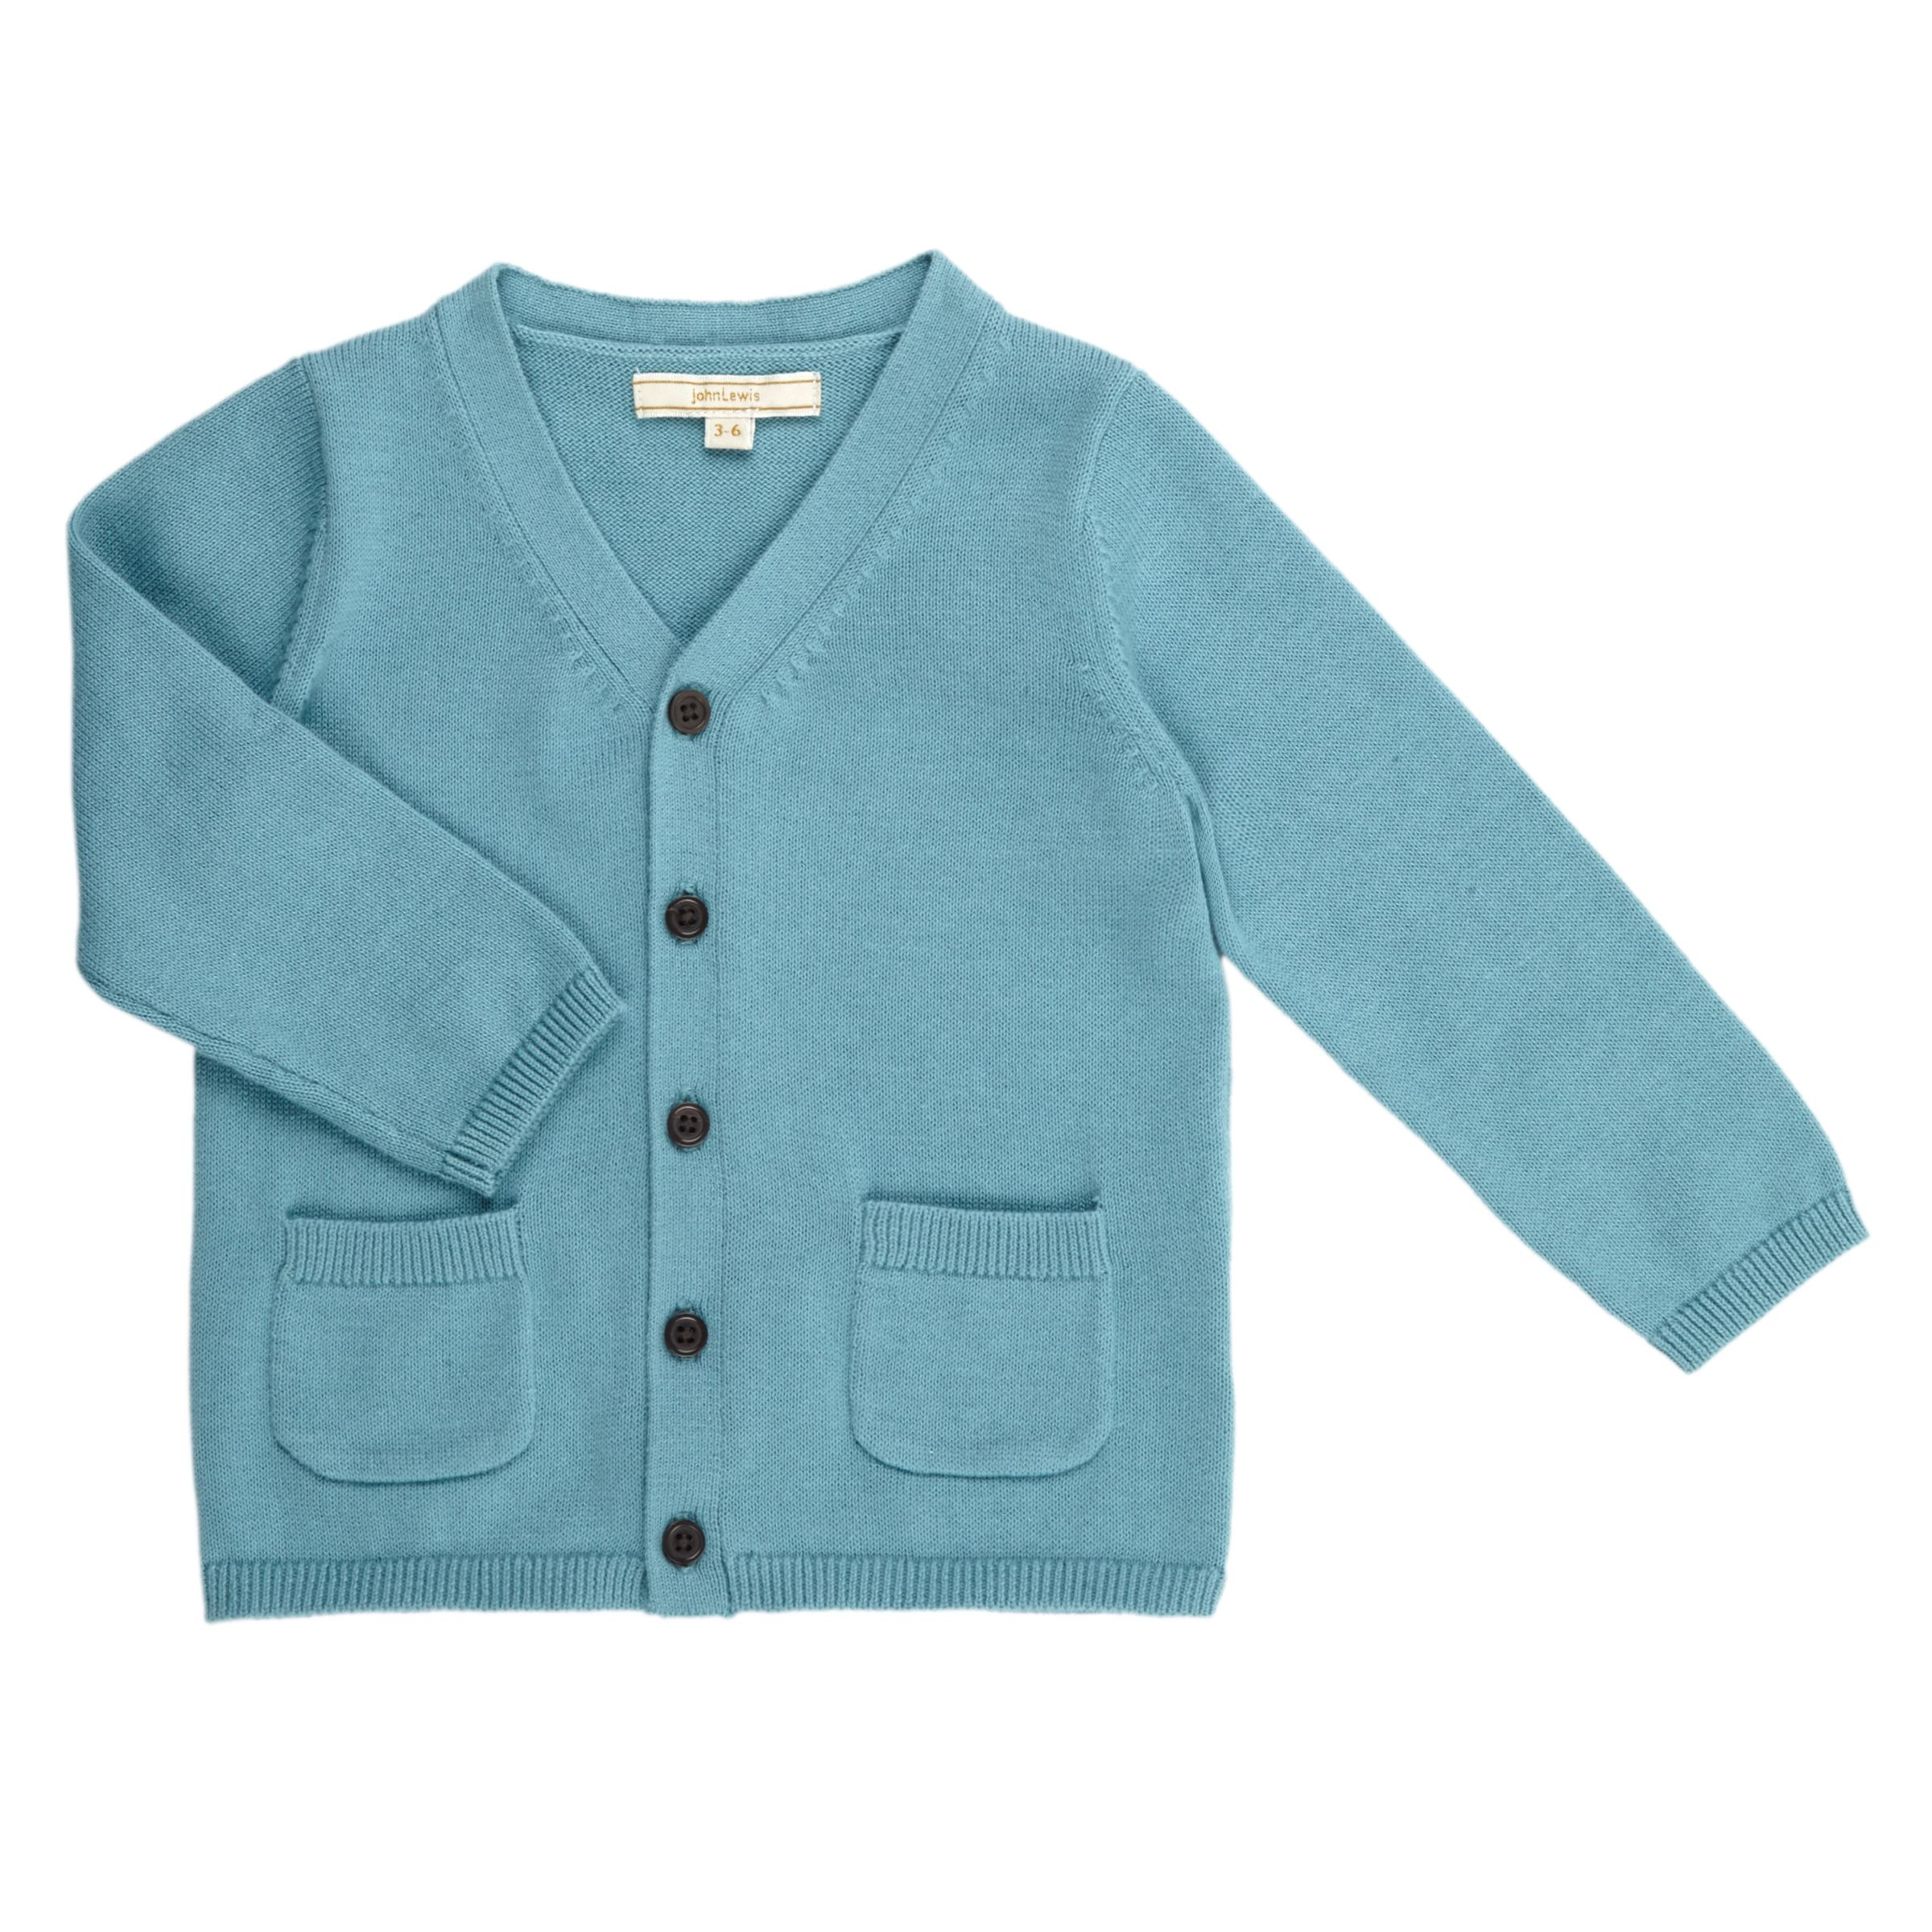 John Lewis Heirloom Collection John Lewis Heirloom Collection Baby Knit Cardigan, Cameo Blue